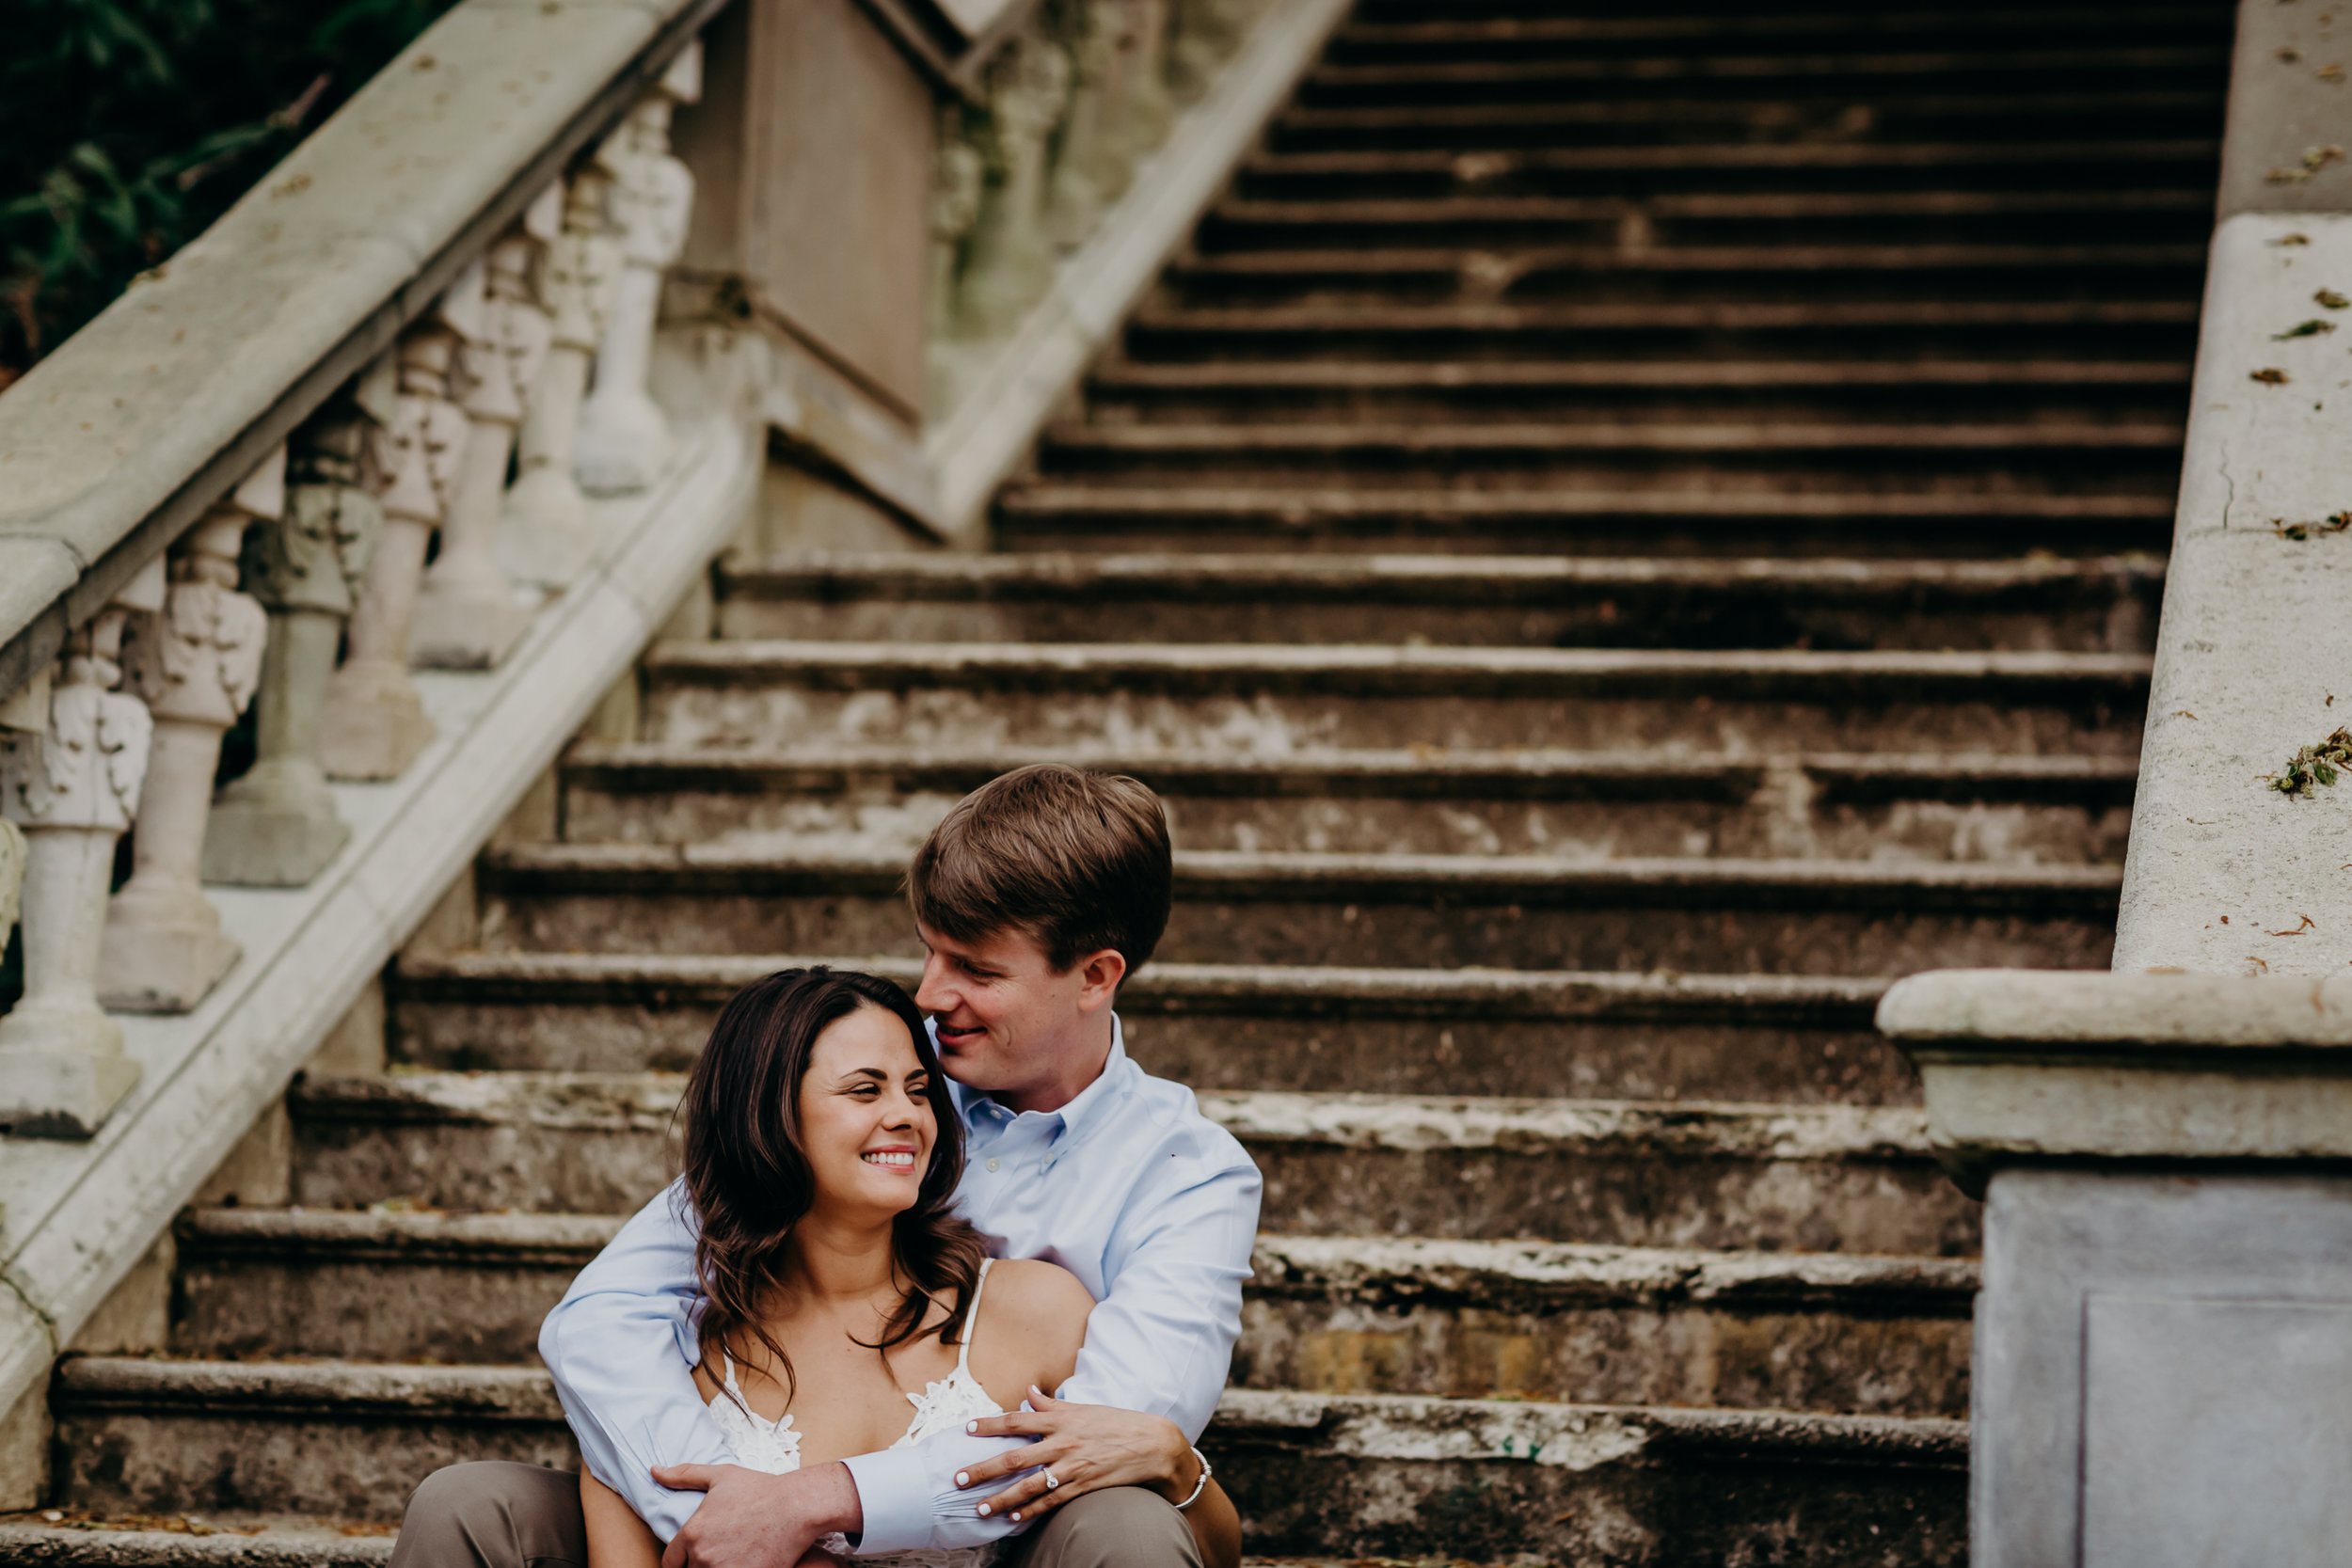 Gianna Keiko Atlanta NYC California Wedding Elopement Photographer_ Engagement-22.jpg